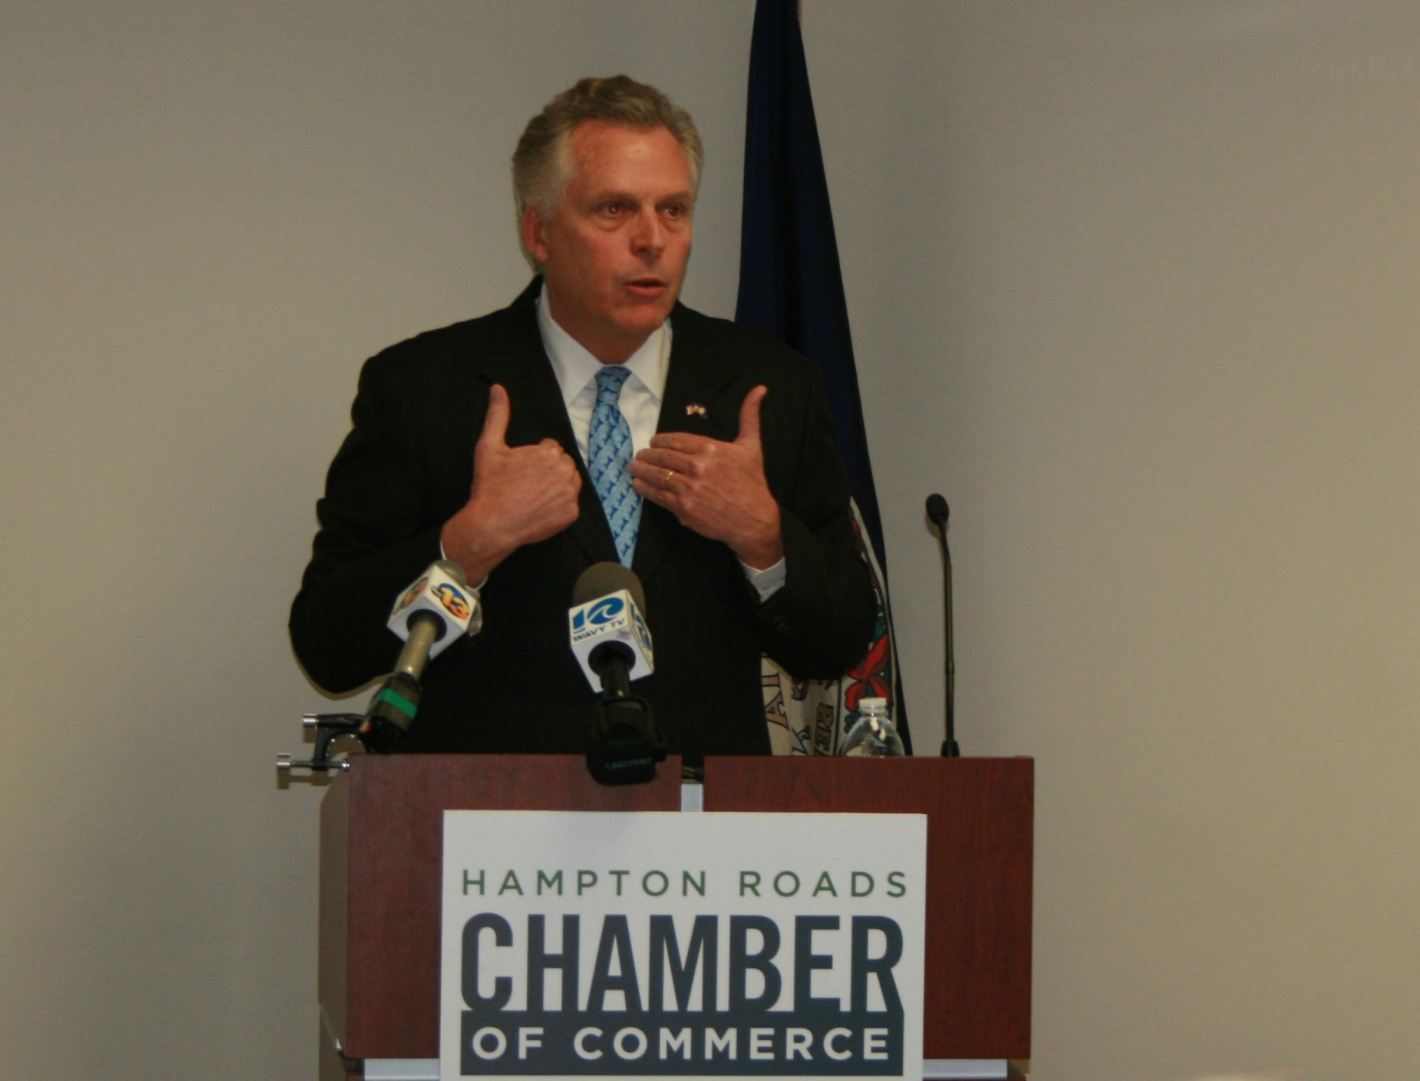 Governor McAuliffe Calls for Common Sense Approach to Issues Affecting Business